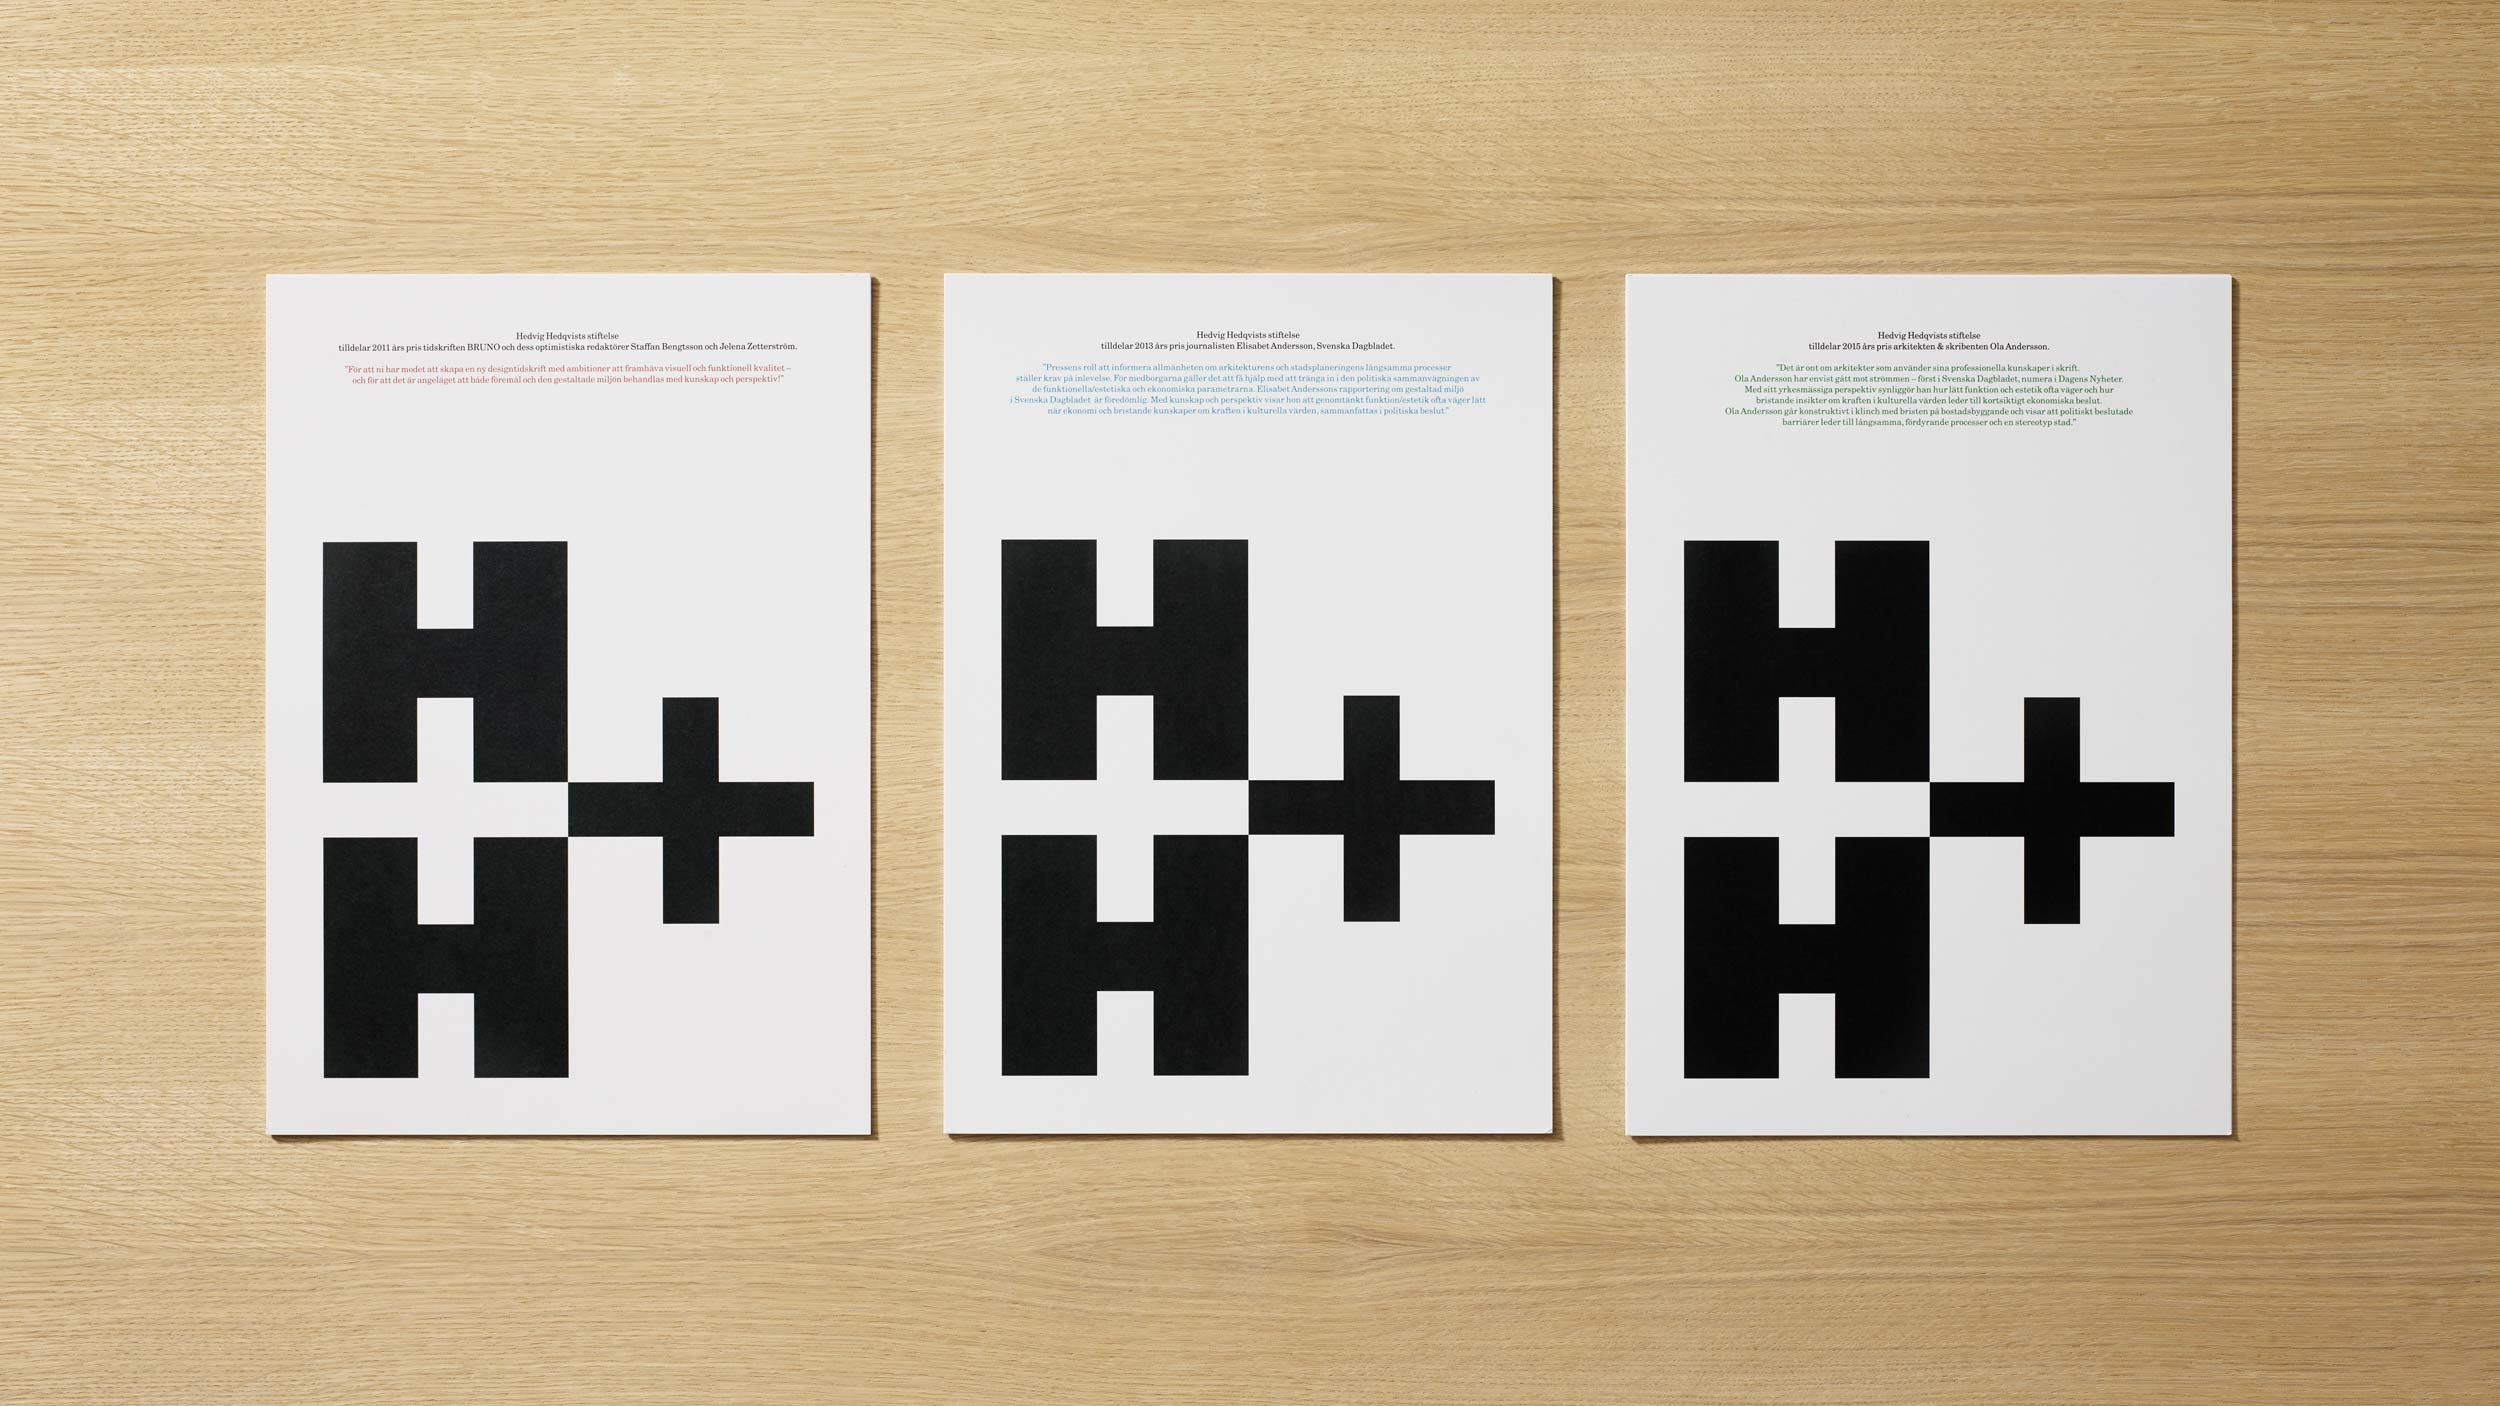 Hedvig Hedqvist Foundation – graphic identity